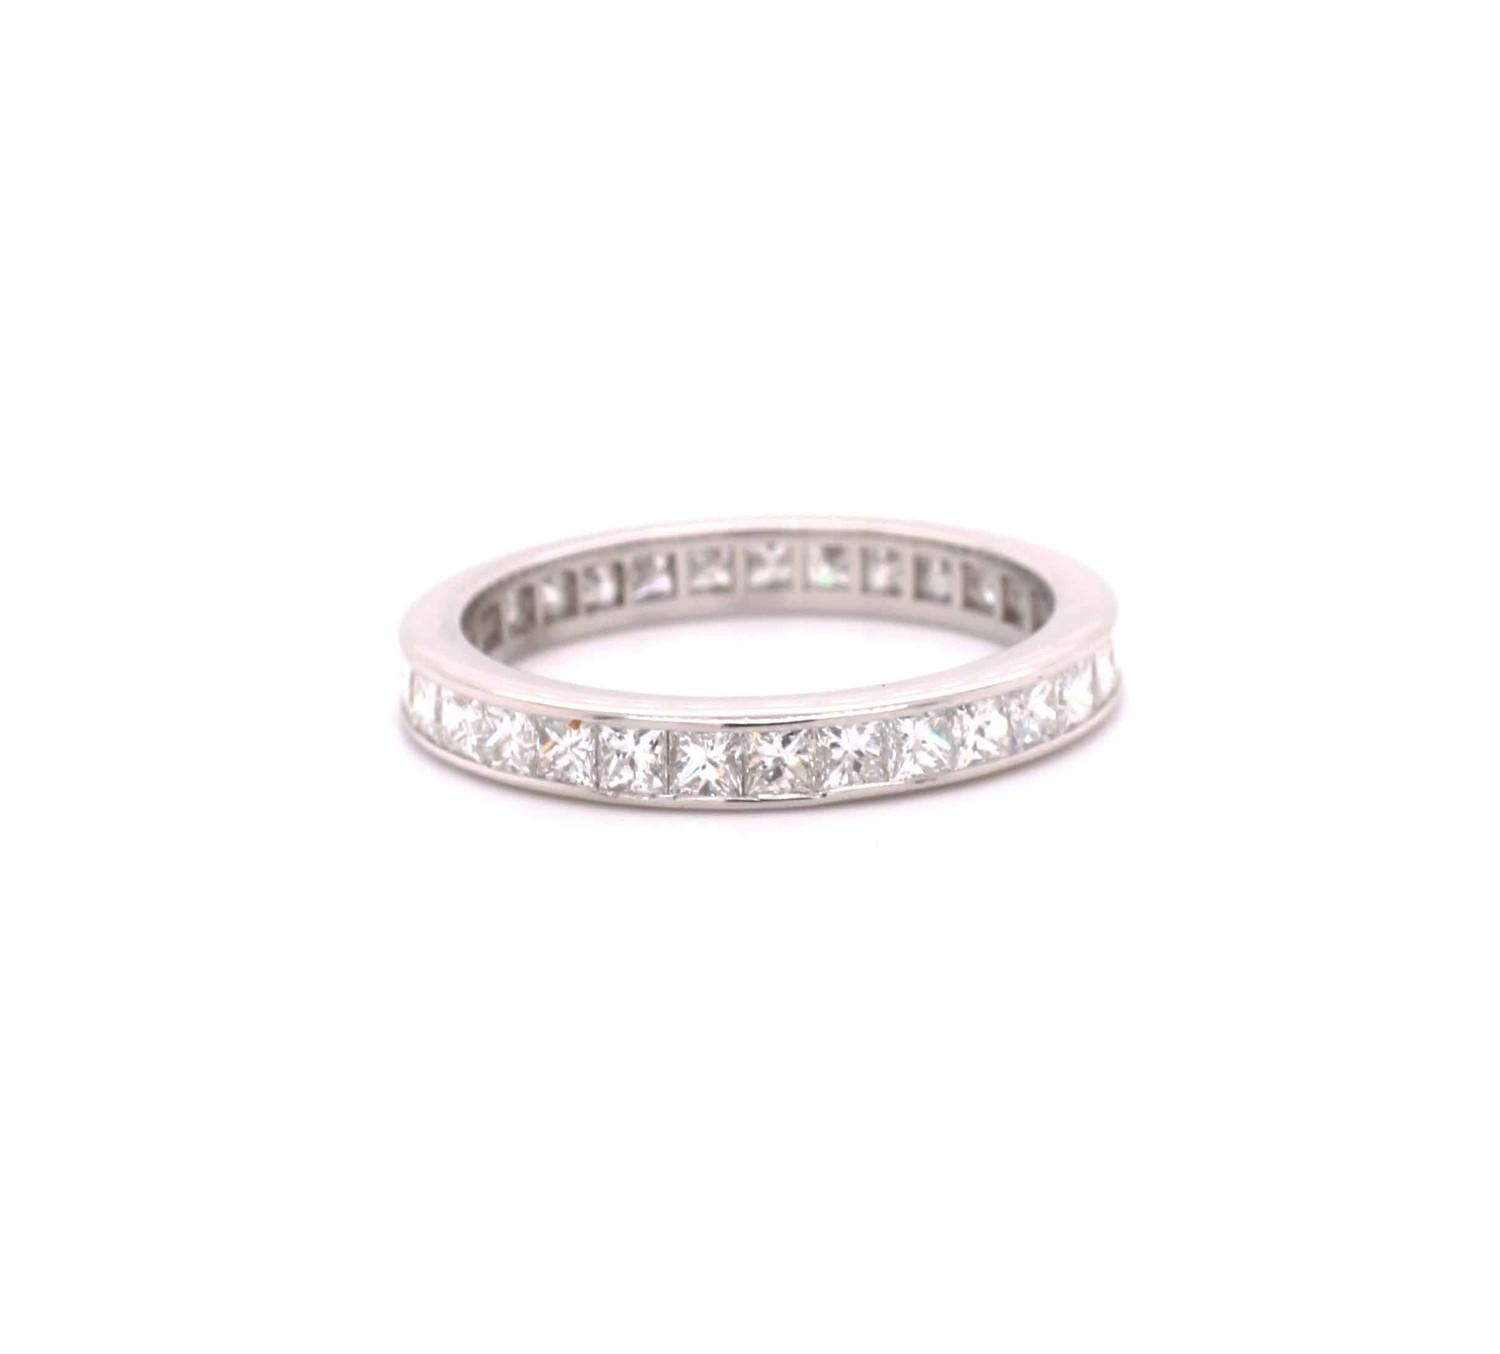 A Princess cut diamond eternity ring mounted in platinum by Tiffany & Co. Contemporary. Signed - Image 2 of 6